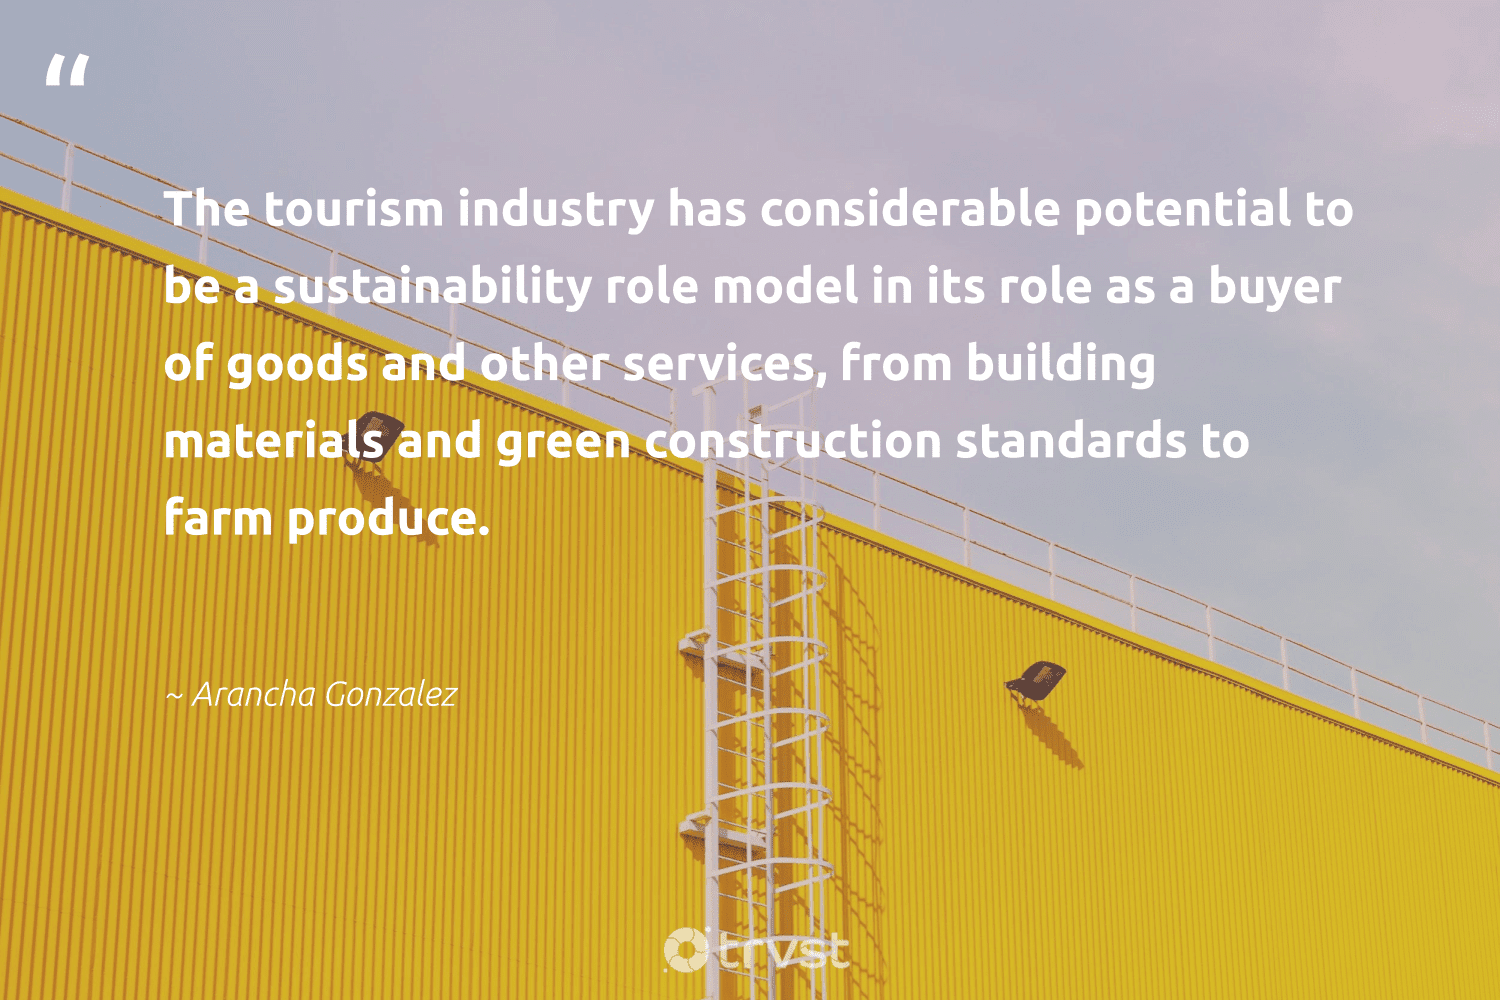 """""""The tourism industry has considerable potential to be a sustainability role model in its role as a buyer of goods and other services, from building materials and green construction standards to farm produce.""""  - Arancha Gonzalez #trvst #quotes #sustainability #green #sustainableliving #betterplanet #bethechange #socialchange #ecofriendly #dogood #sustainable #dosomething"""